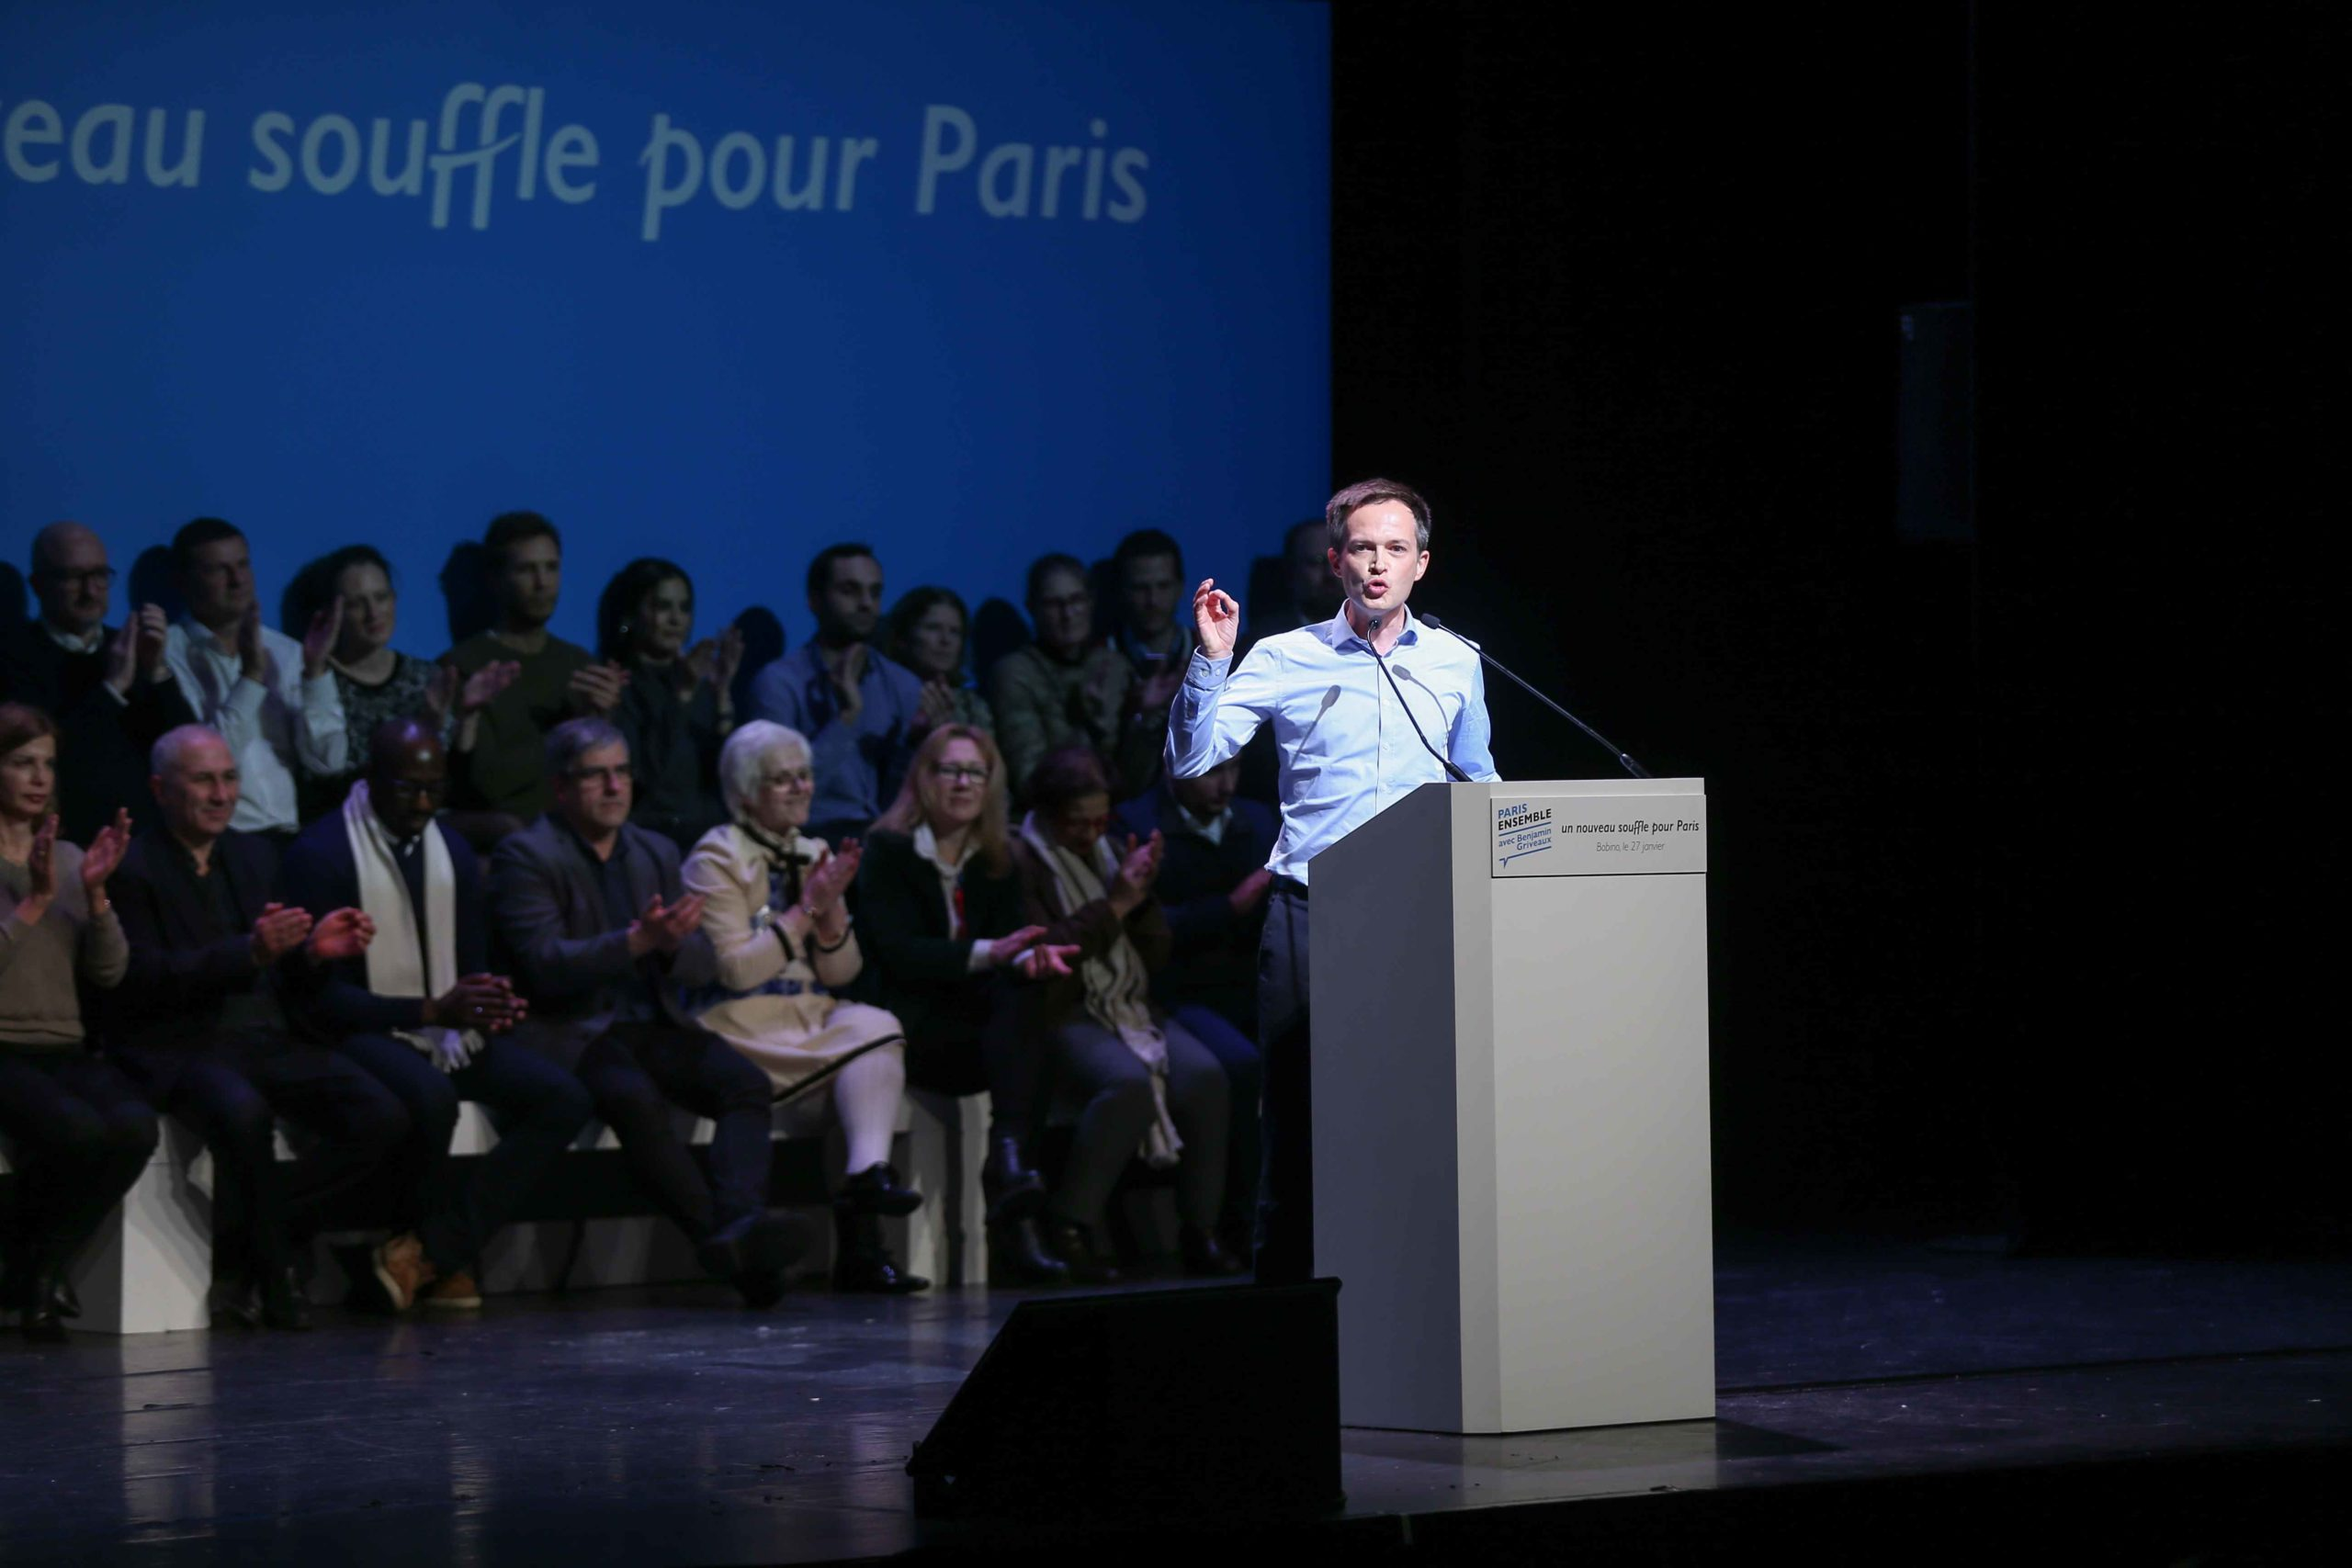 Union of Independent Democrats (UDI) party member of parliament Pierre-Yves Bournazel addresses at the Bobino theater for the Benjamin Griveaux meeting, in Paris, on January 27, 2020. Benjamin Griveaux is the official La Republique en Marche (LREM) candida